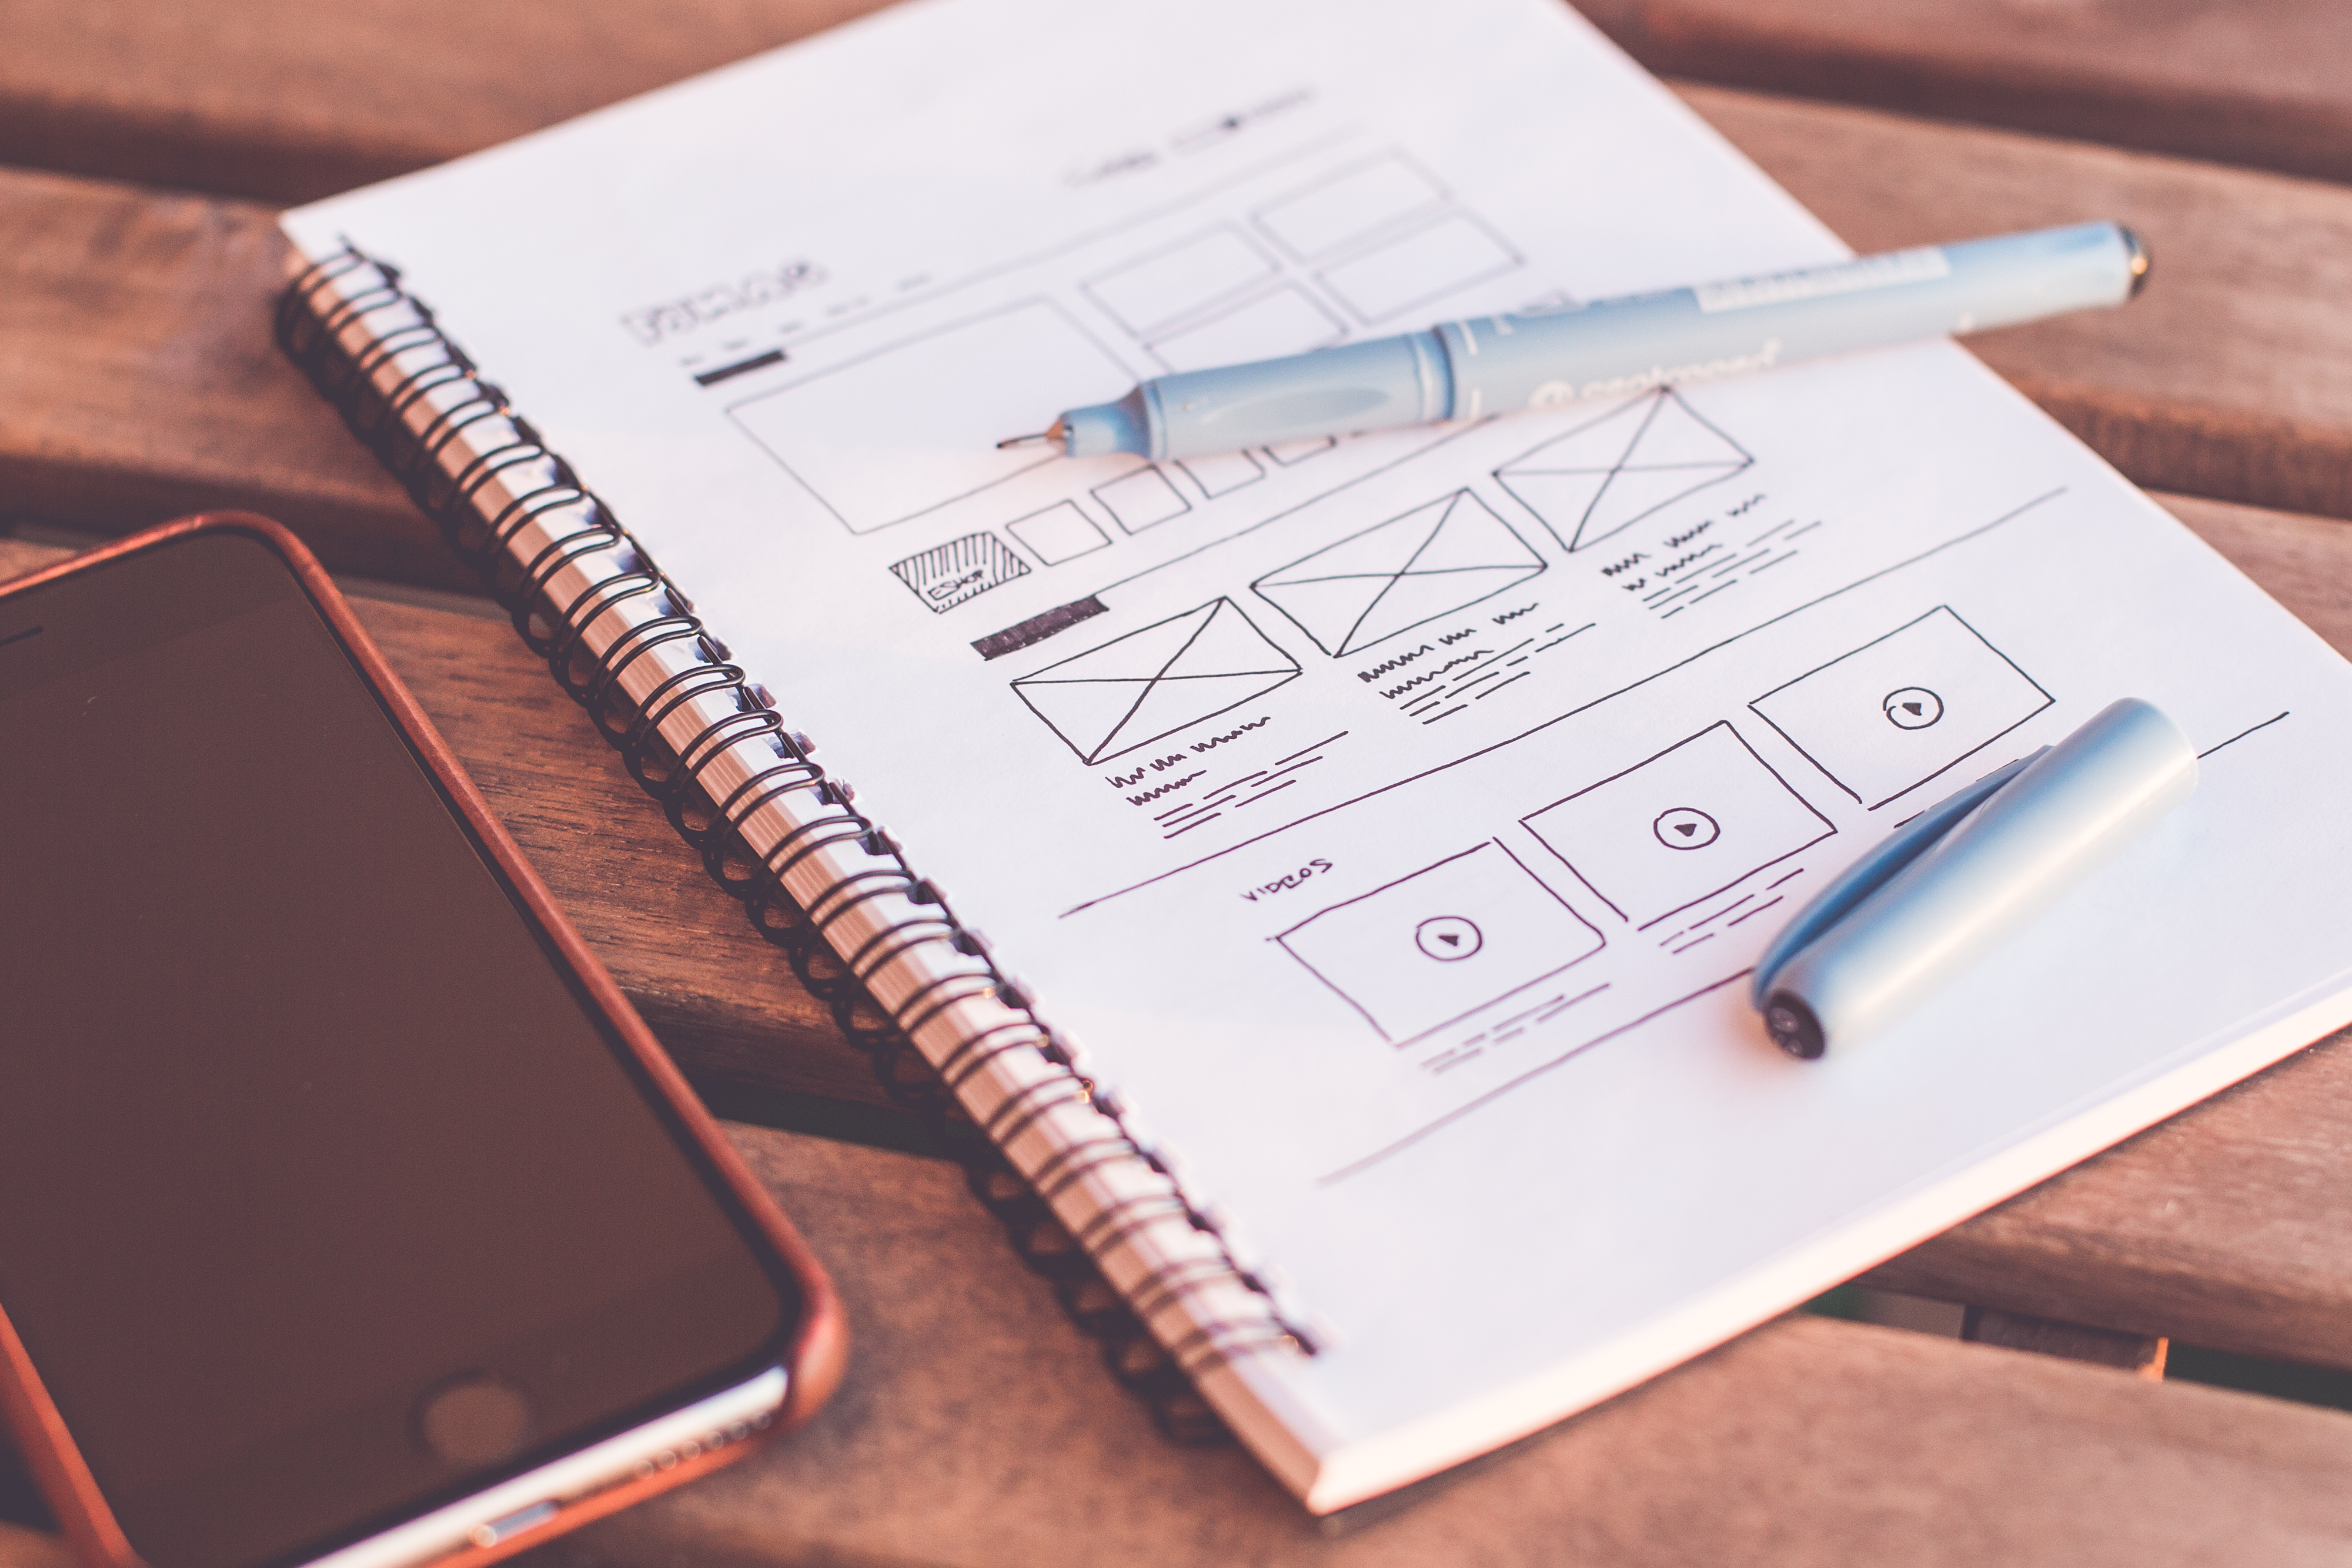 5 Questions To Ask Your App Development Agency